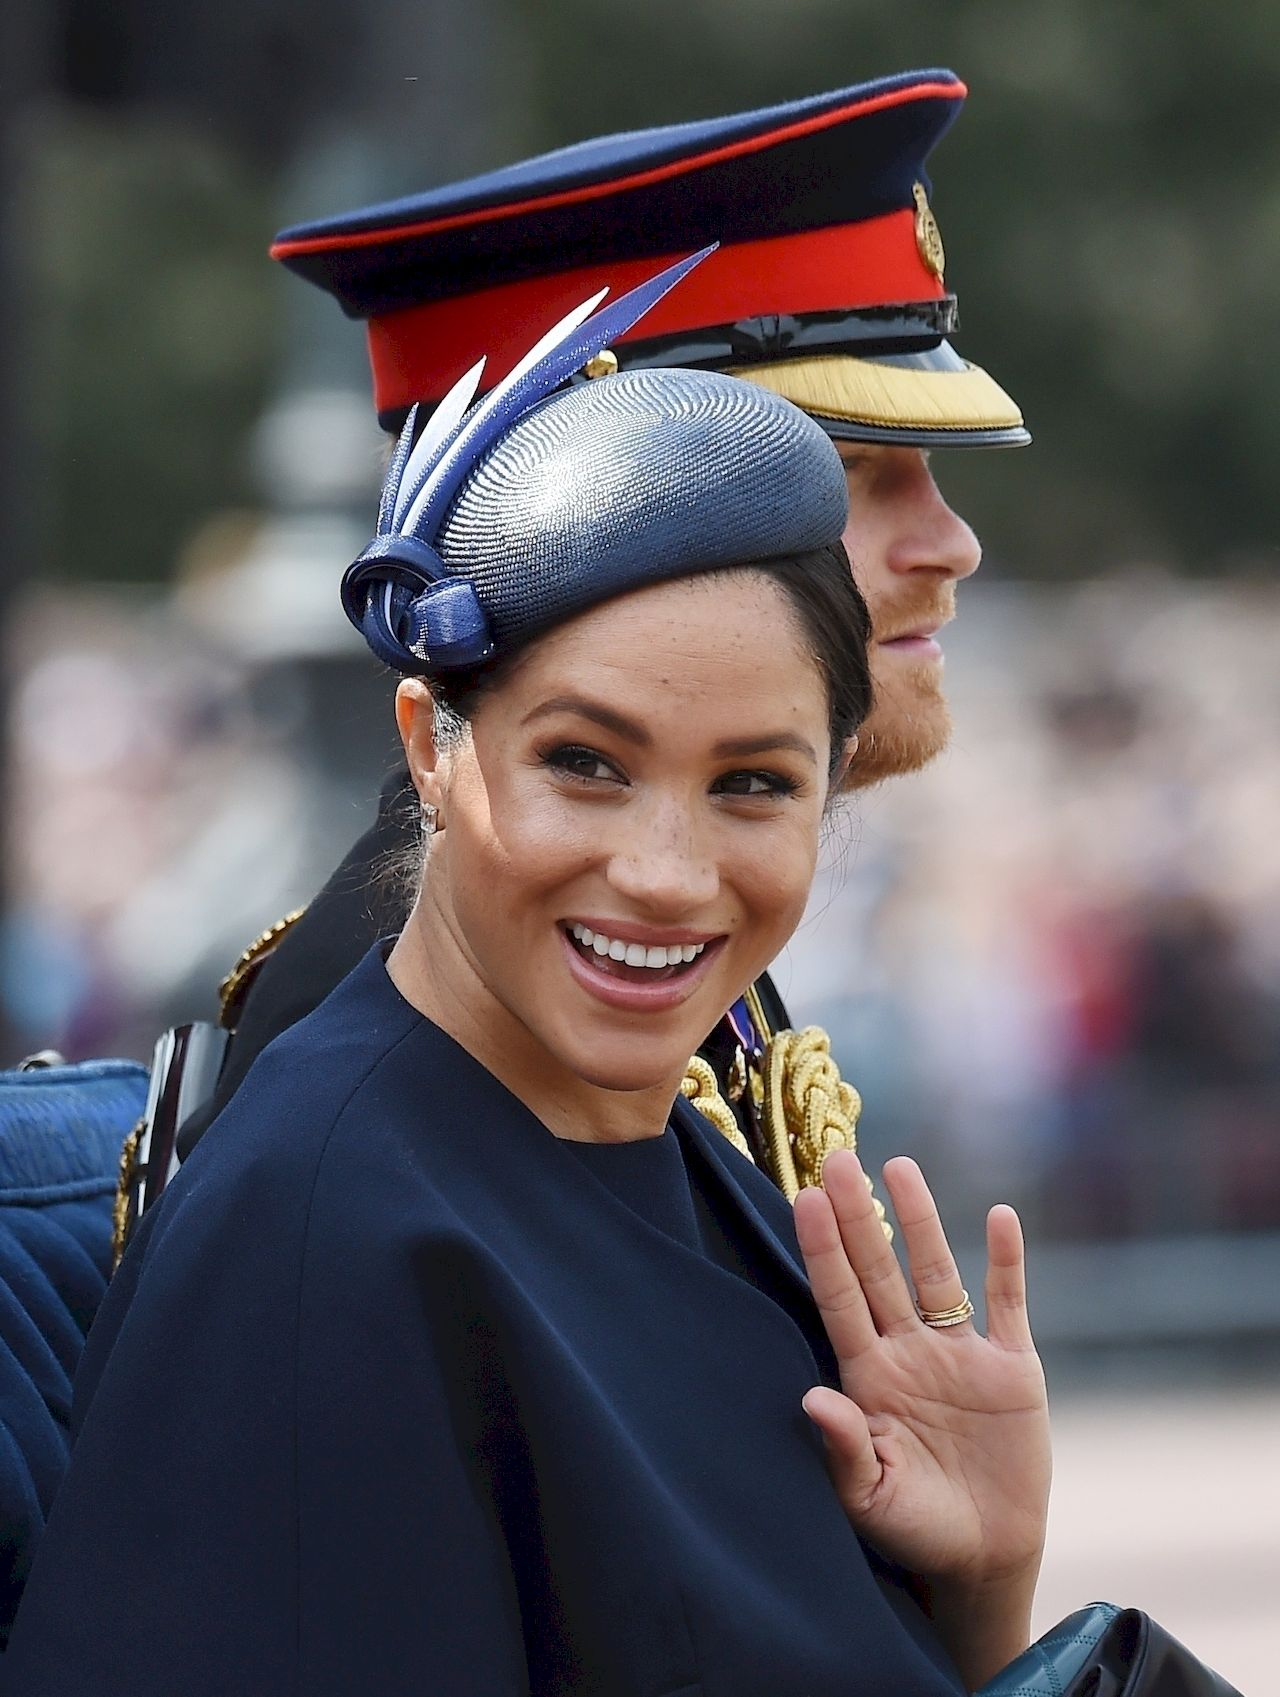 Royals seen attending the Trooping The Colour for the Queen's official birthday parade. / Zed Jameson / BACKGRID , kod: Meghan, Duchess of Sussex, Prince Harry